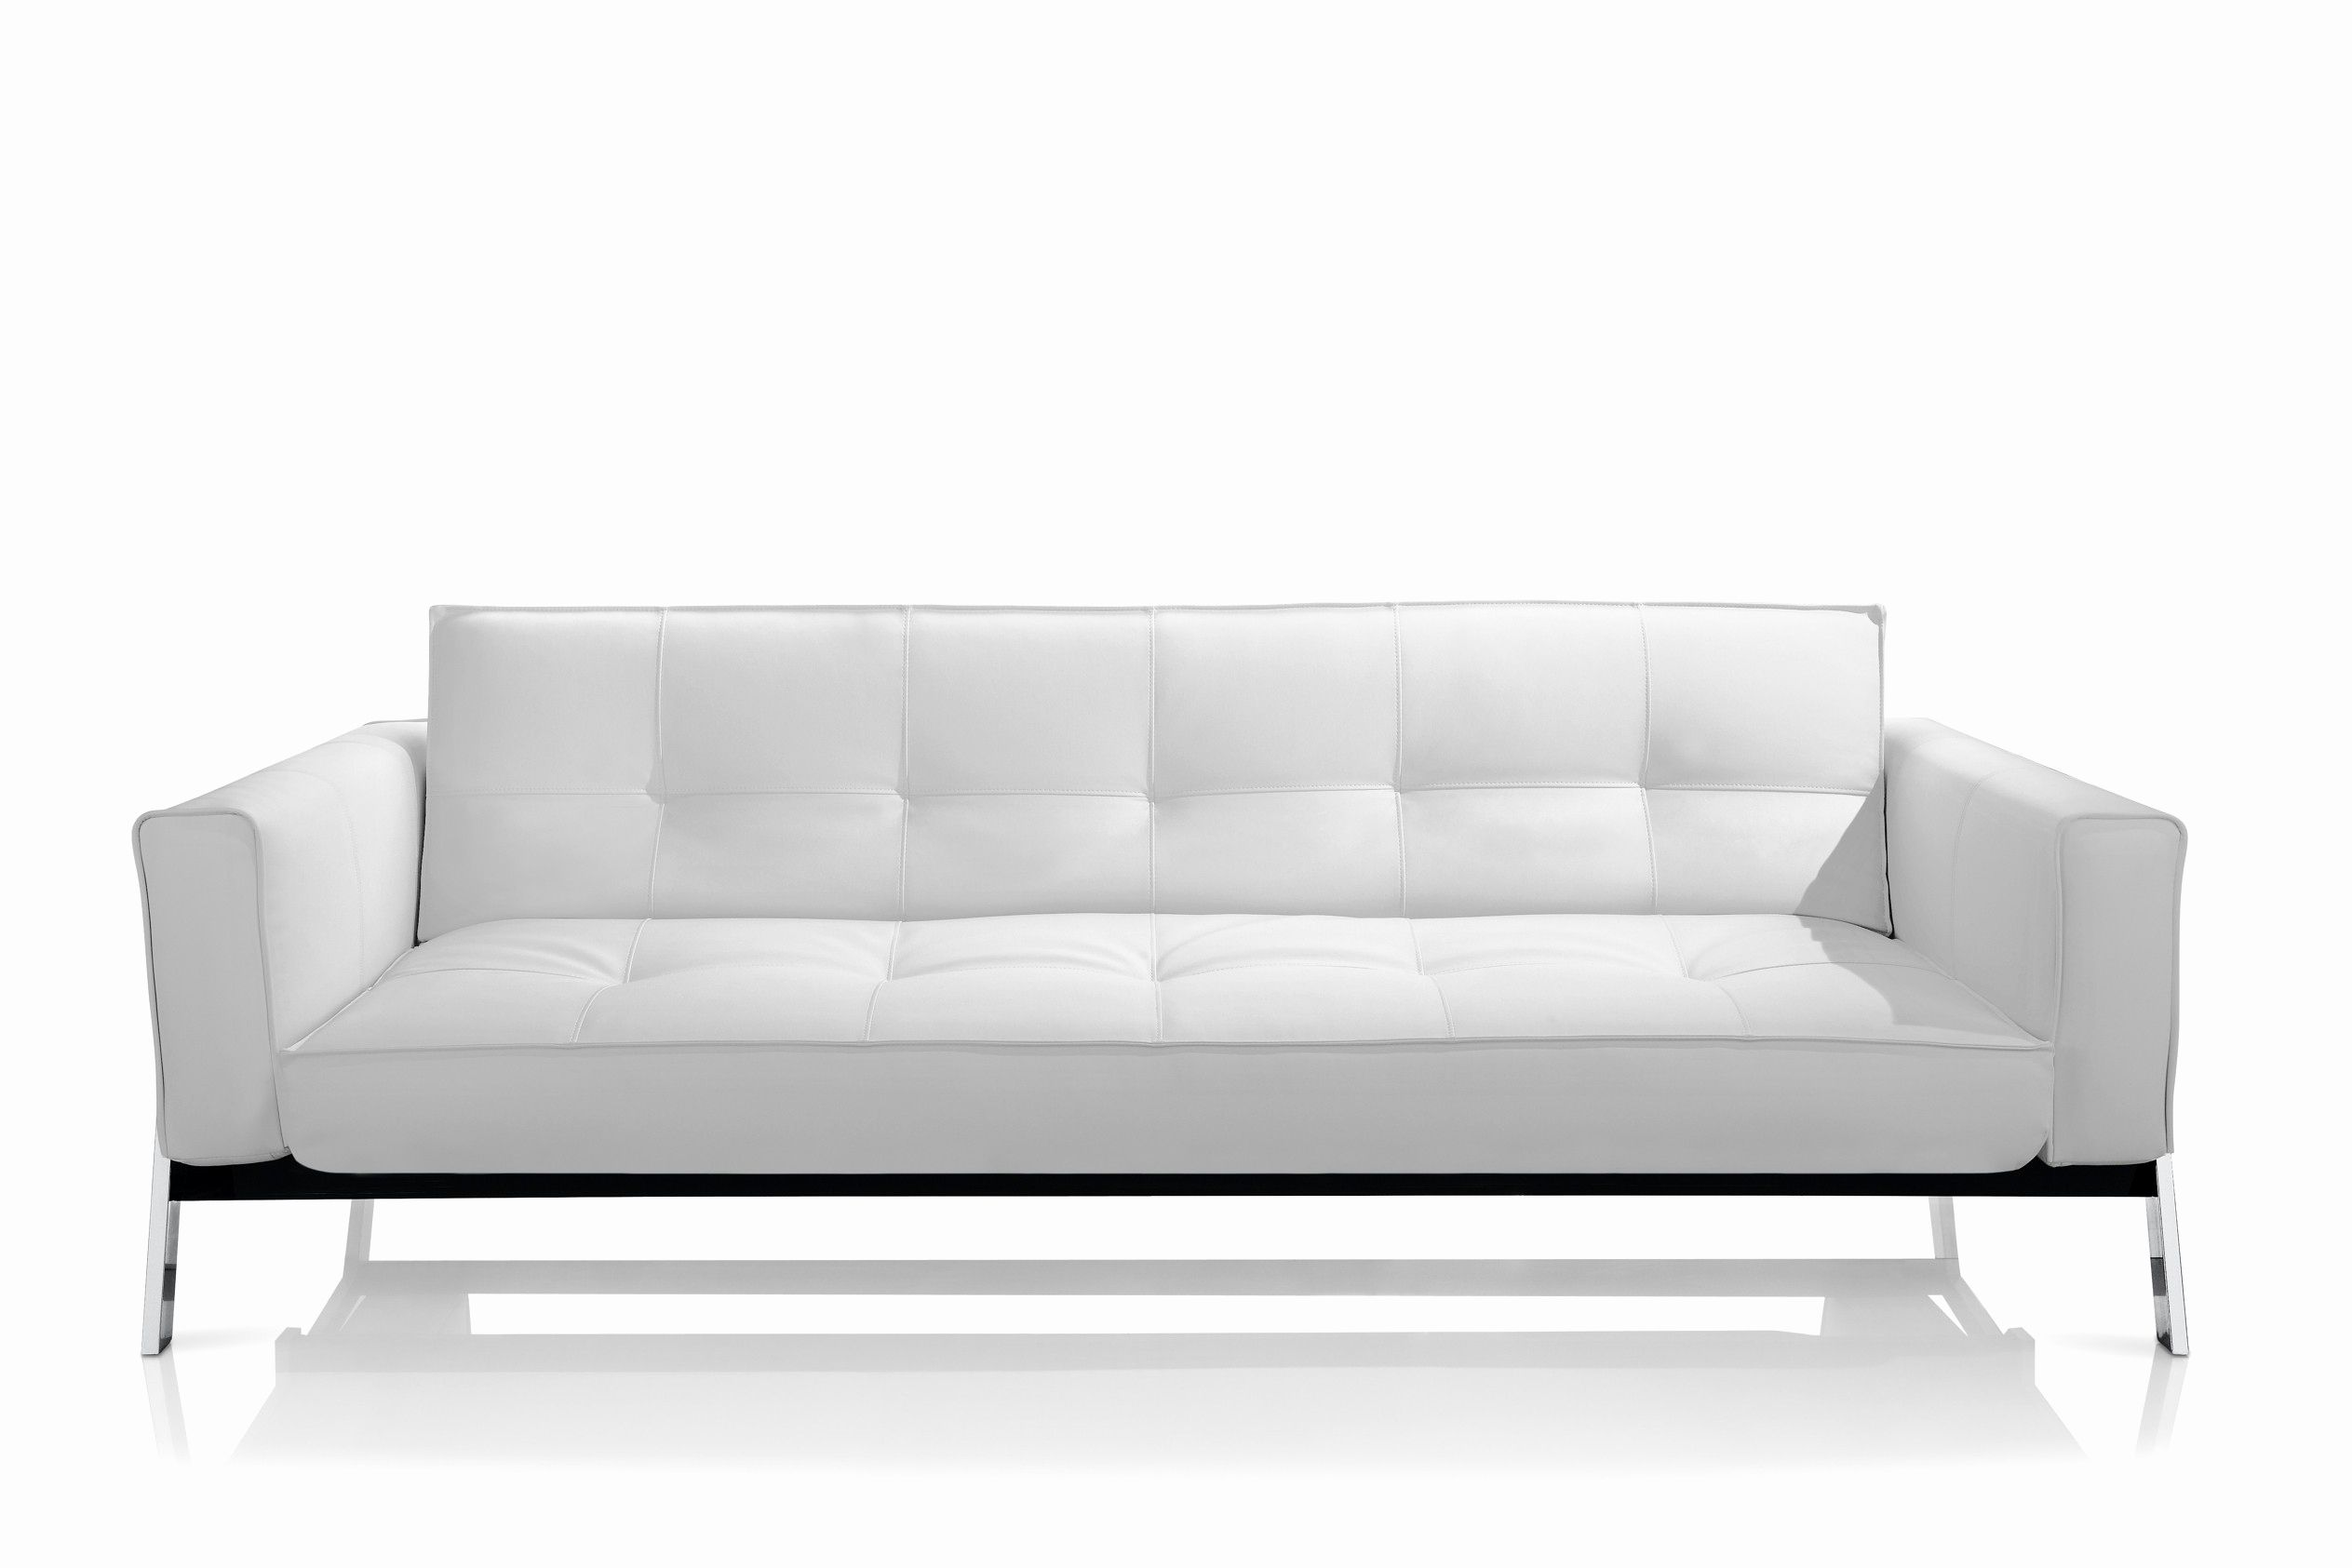 office sofa set. Best Of Office Sofa Set Photograpy Inspirational Awesome White Modern Couch Amazing 0